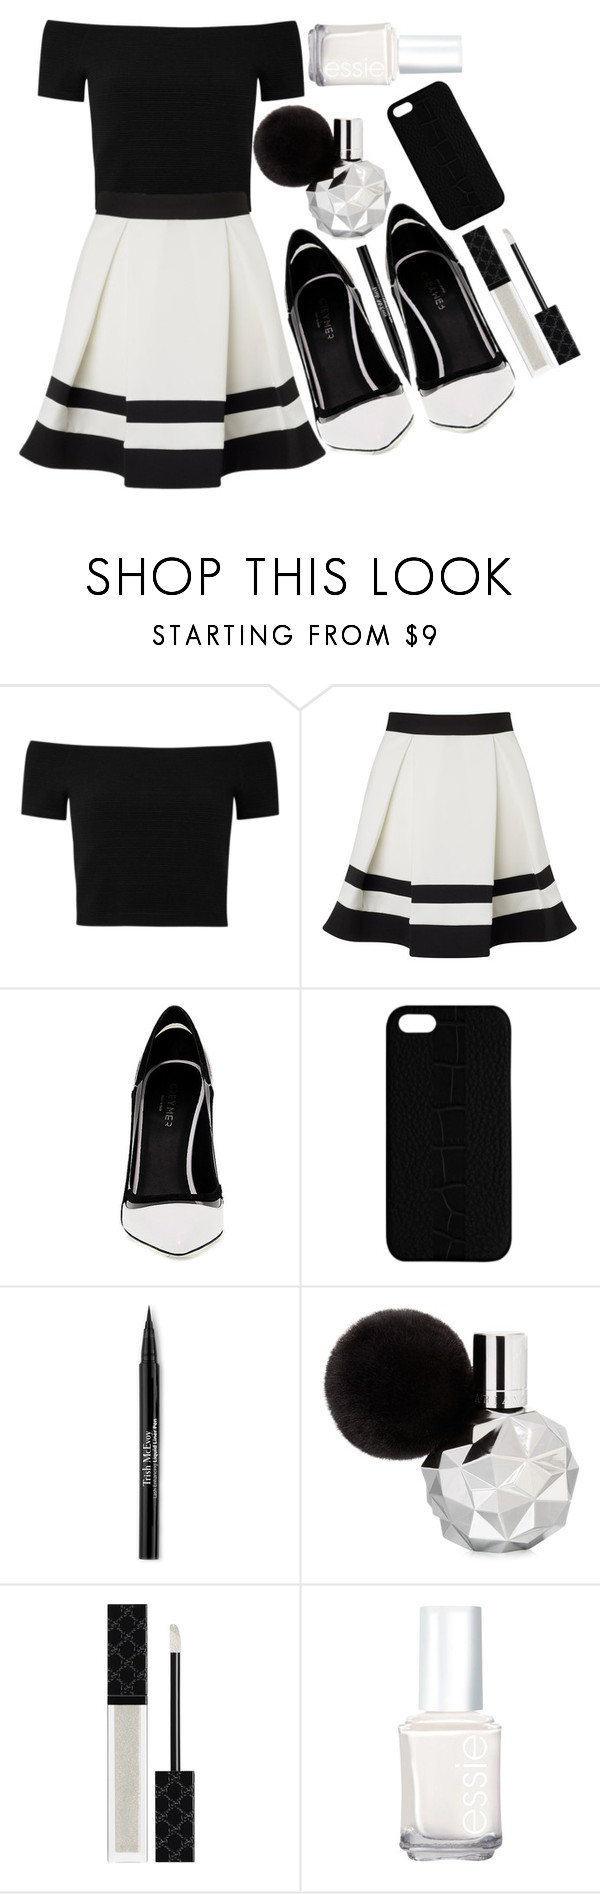 """""""Untitled #60"""" by blue-skies-mmiv ❤ liked on Polyvore featuring Alice + Olivia, Lipsy, Greymer, Maison Takuya, Trish McEvoy, Gucci, Essie, chic, classy and spring2016"""